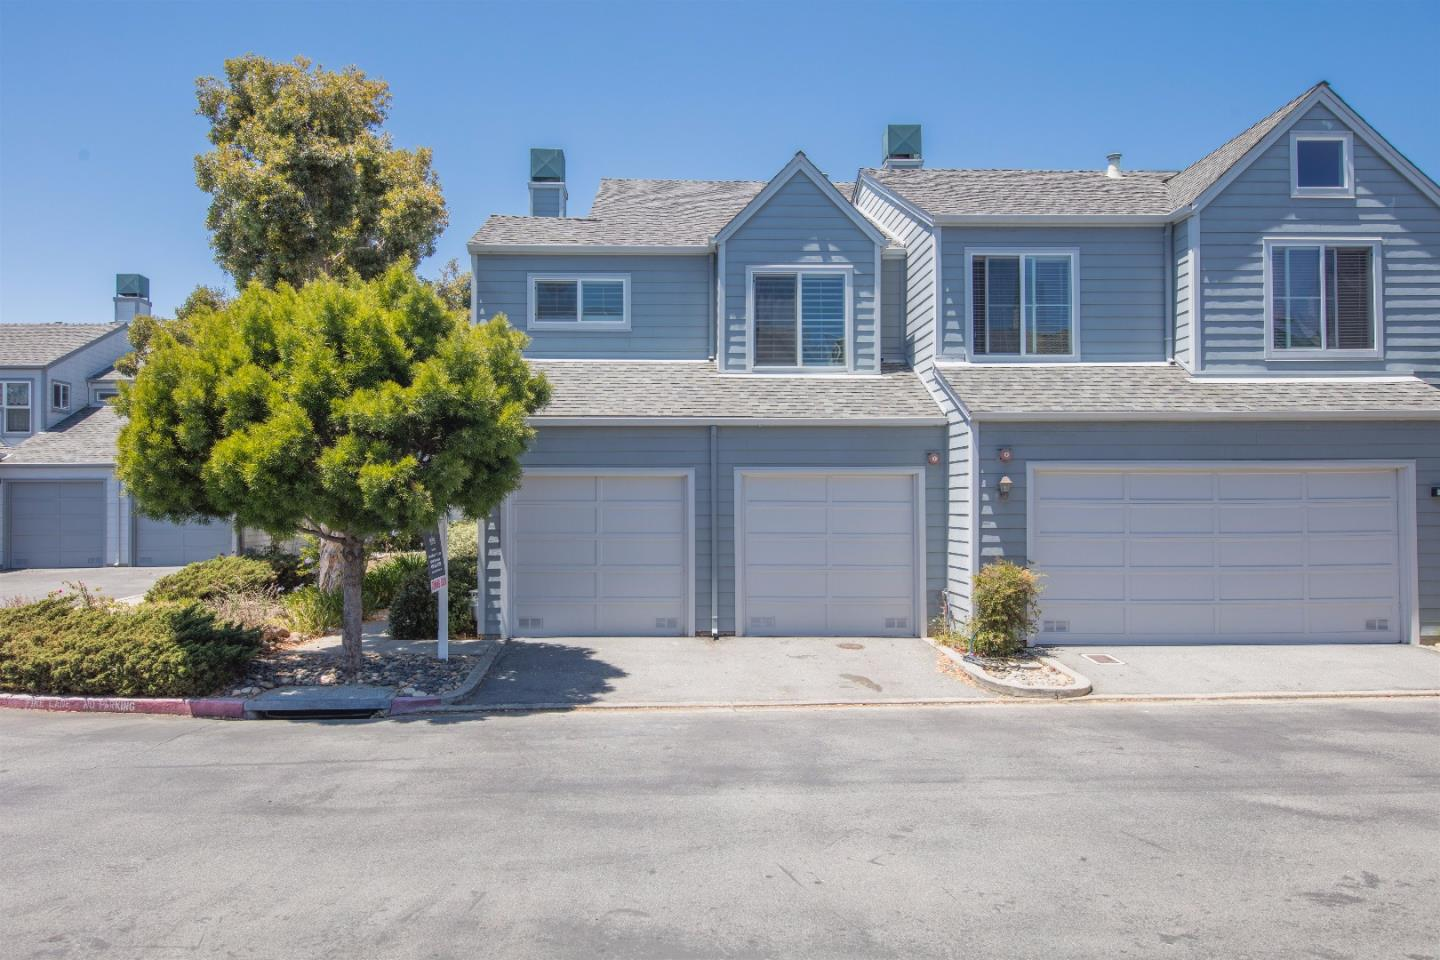 Townhouse for Sale at 20 Charthouse Lane Foster City, California 94404 United States